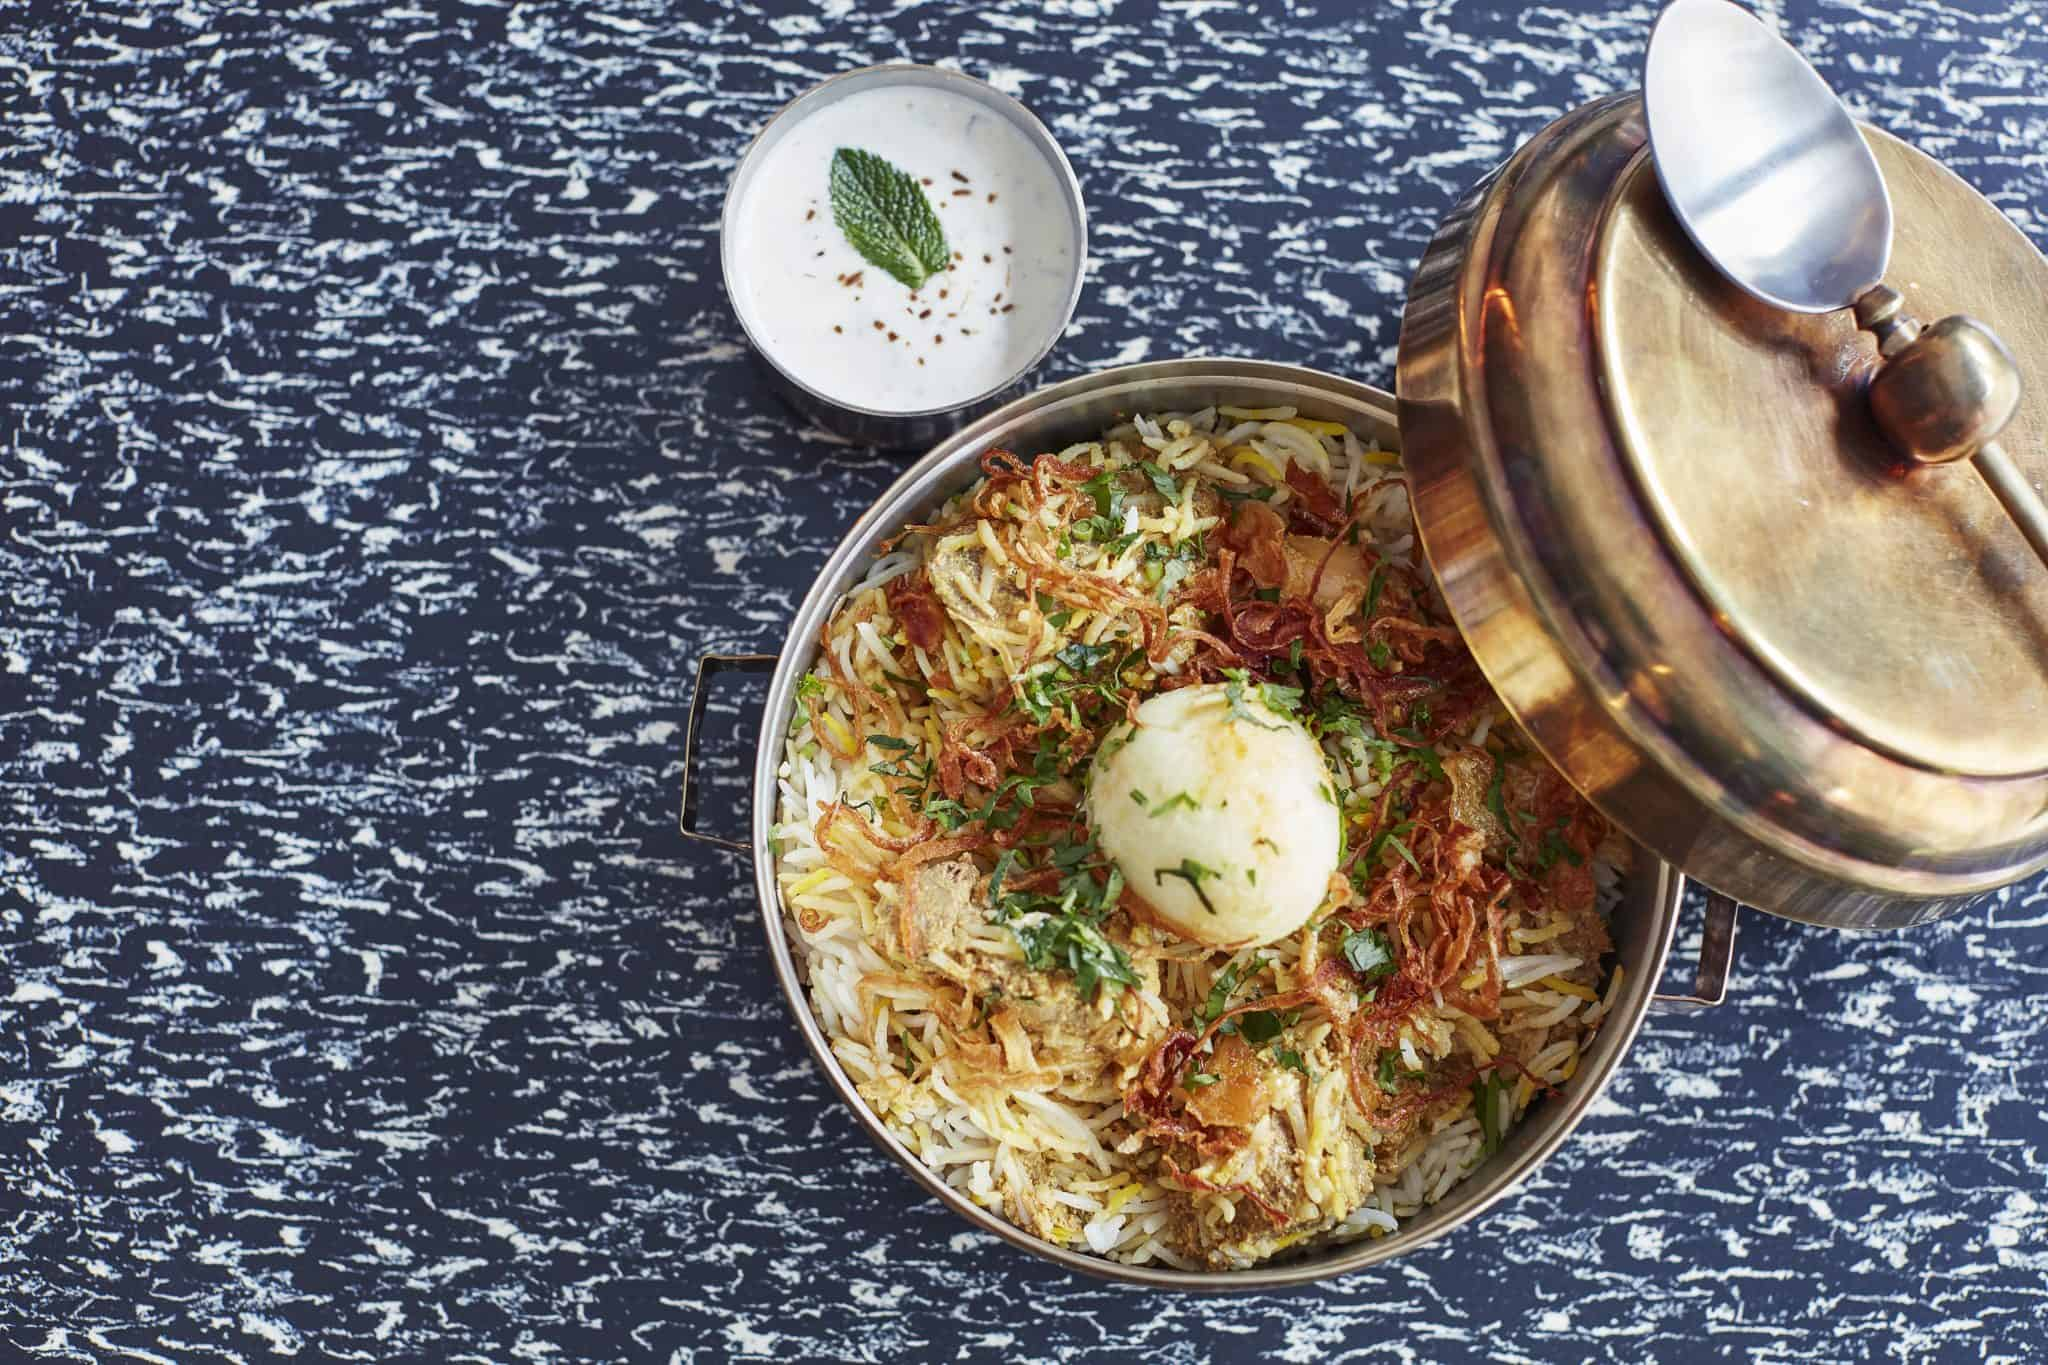 Bombay Bustle delivery rice